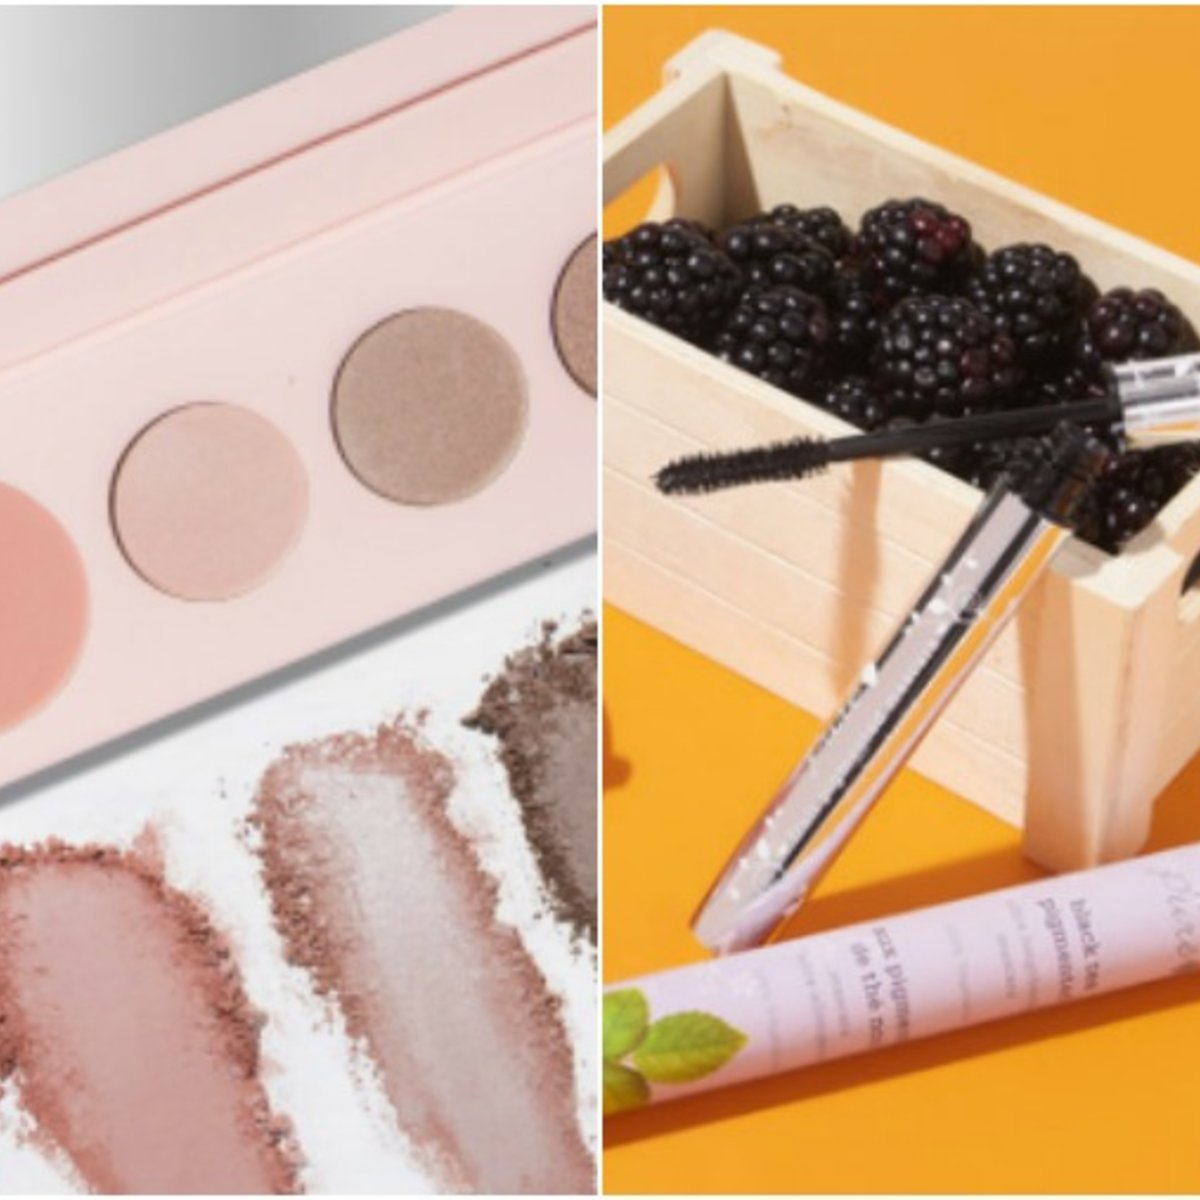 02b95faaa08 Want to give natural makeup a try? Here are 30 products to get you started.